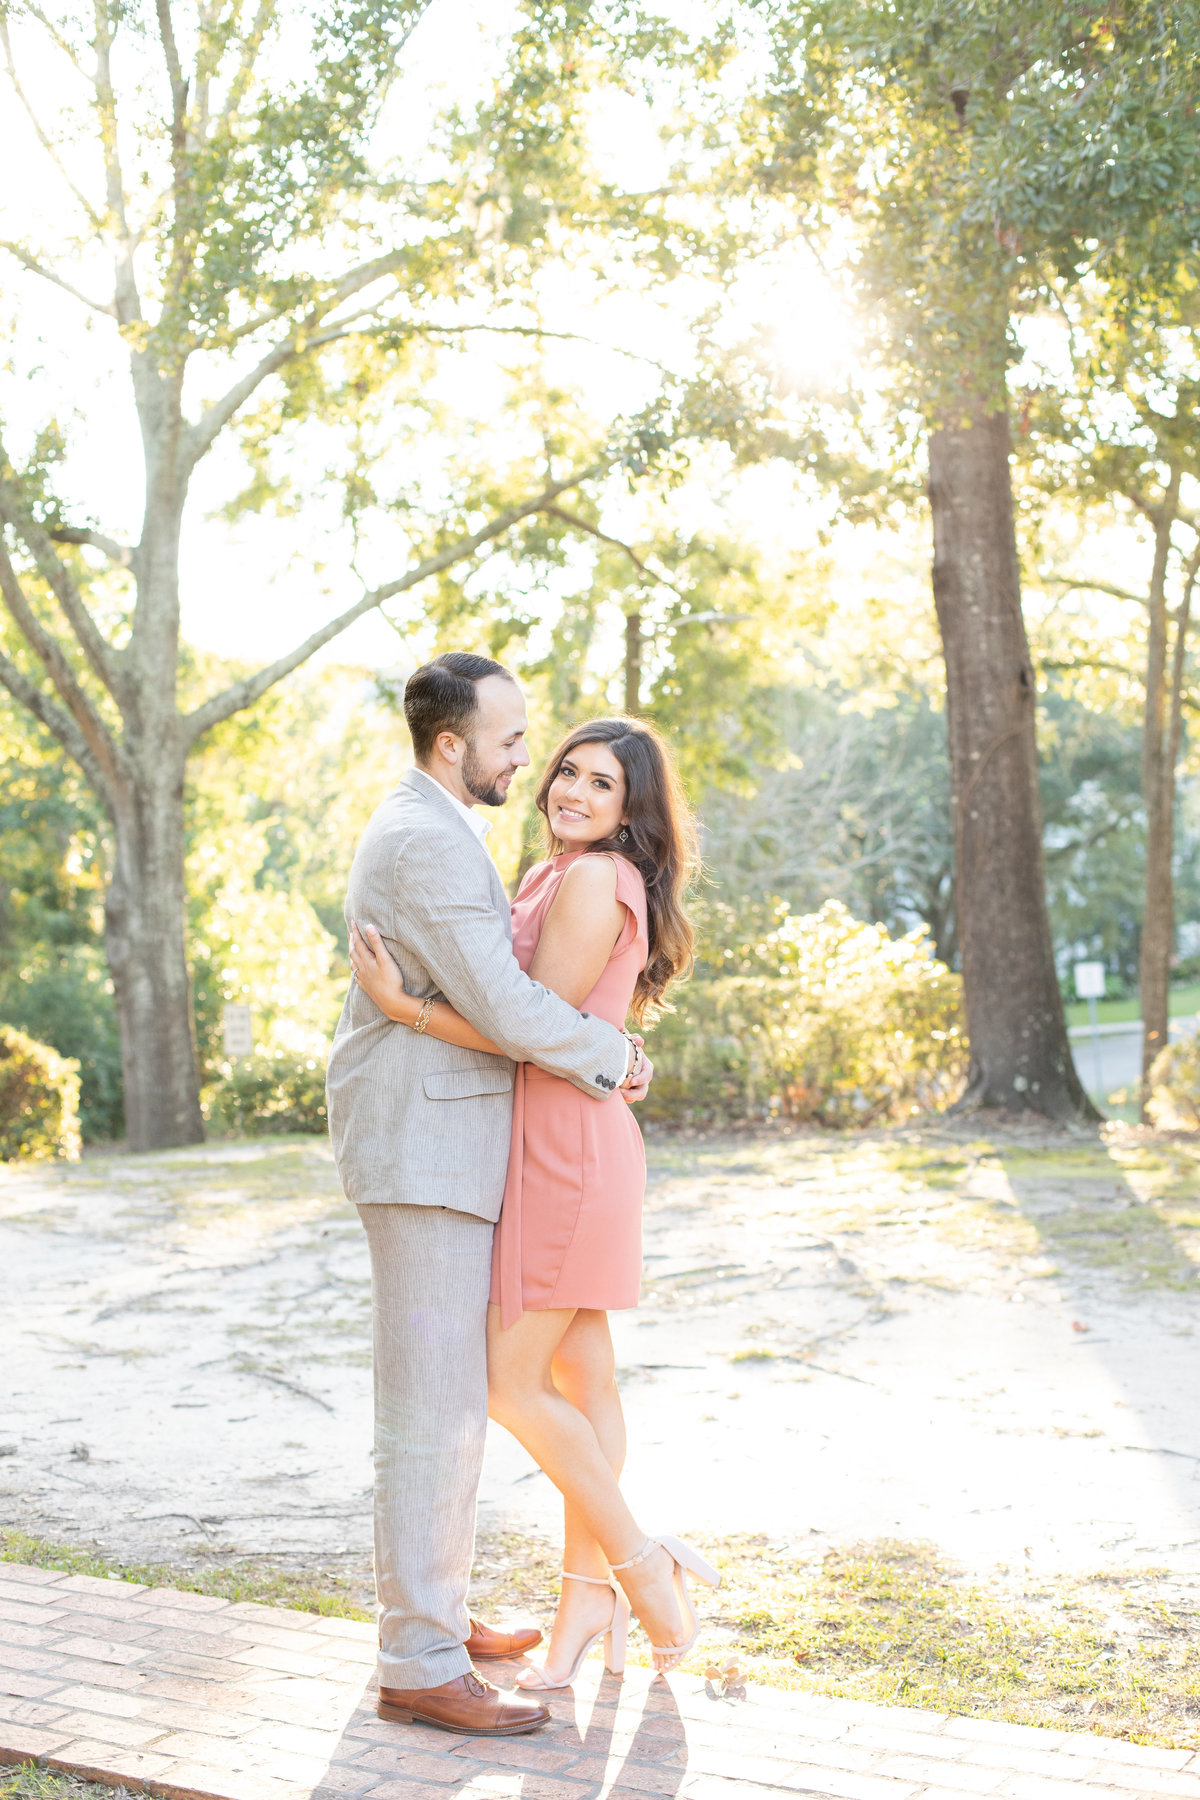 Kayce_Stork_Photography_Weddings_Biloxi_Gulfport092